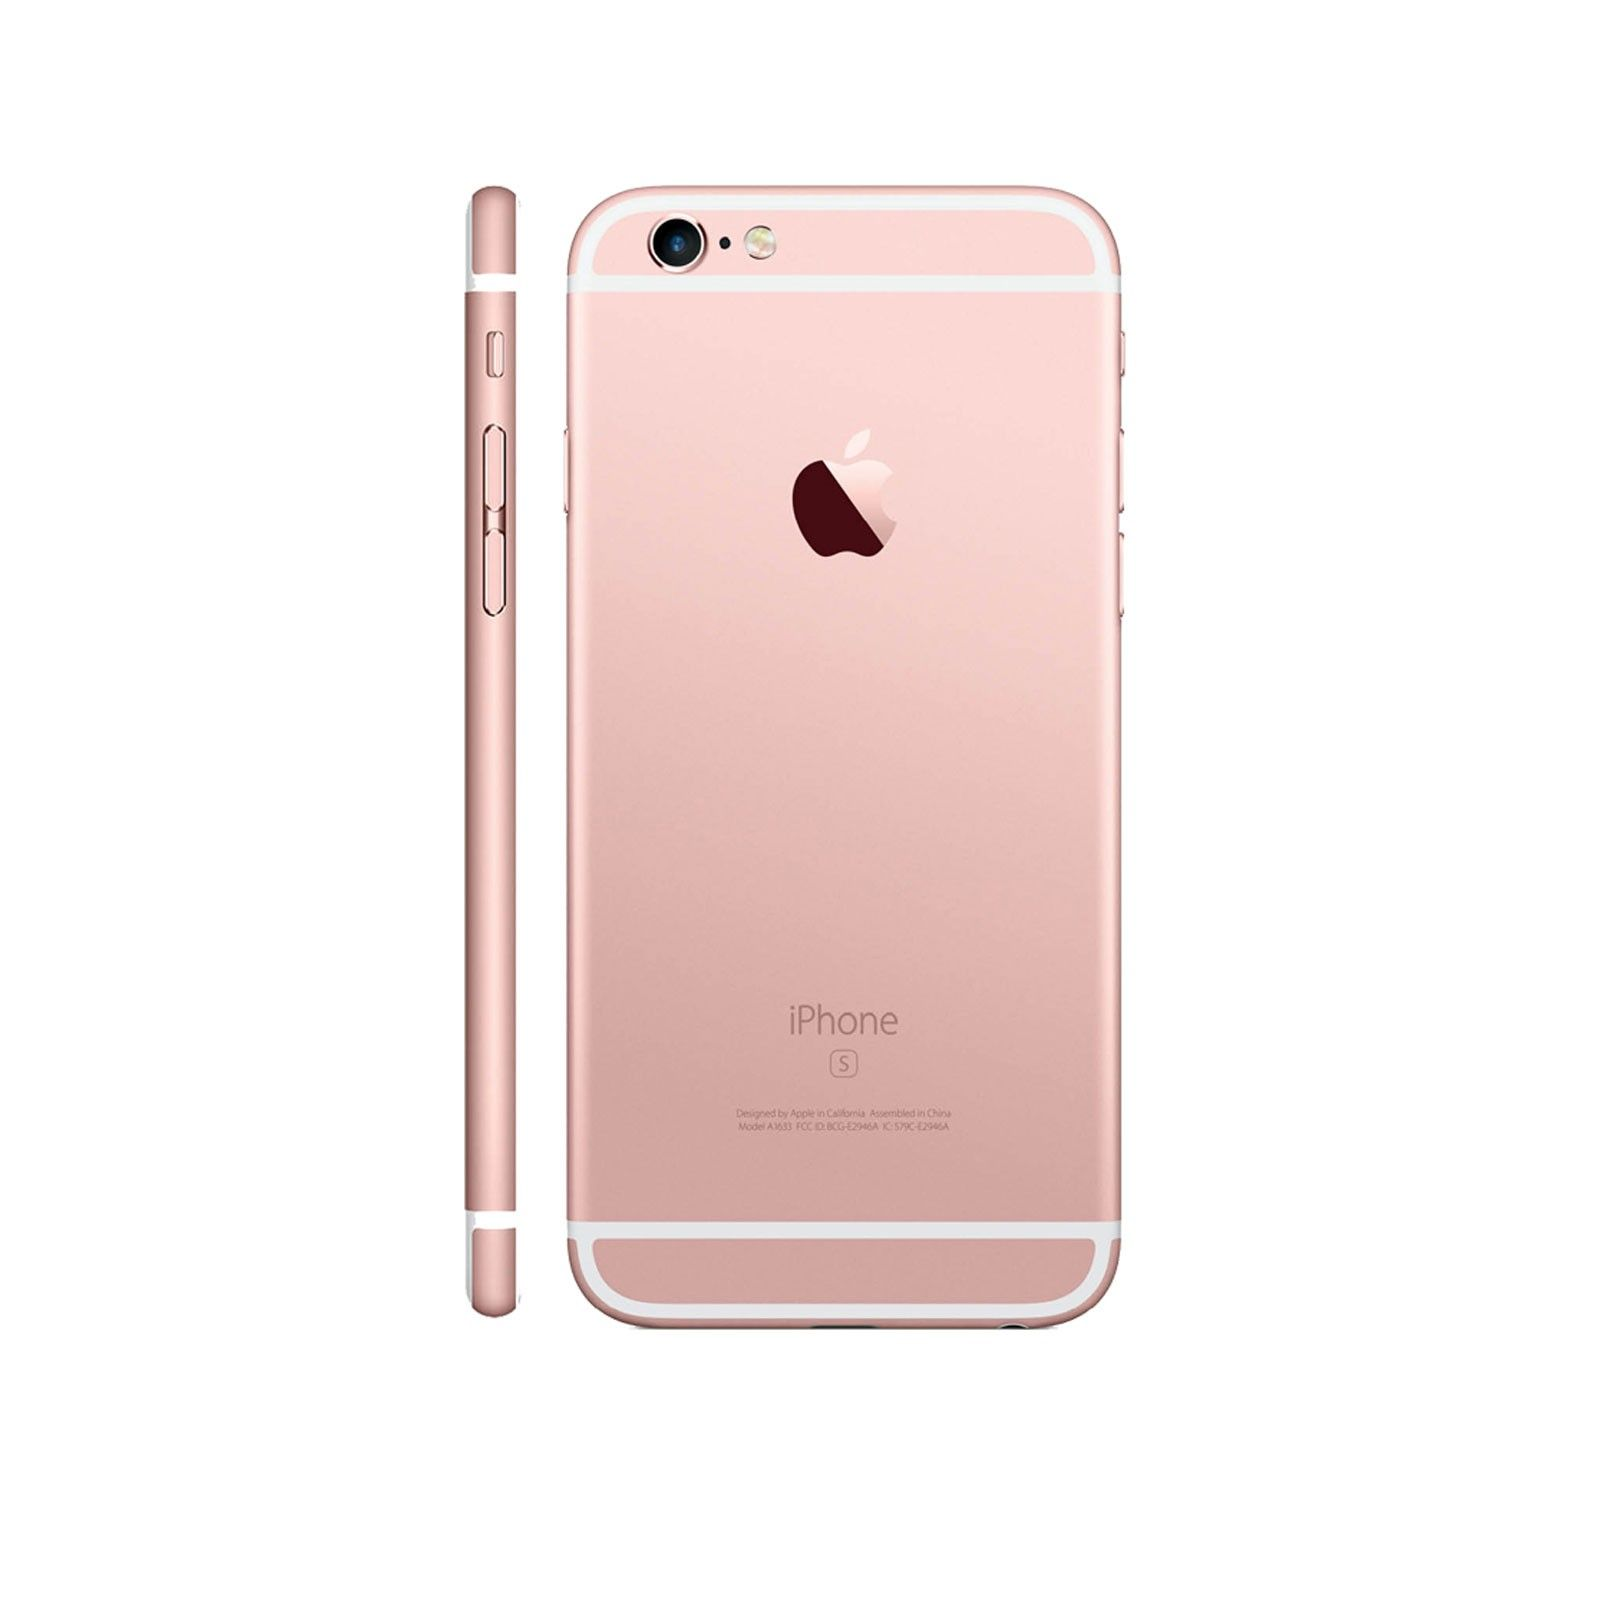 Apple Iphone 6s Plus Rose Gold 64 Gb Buy Apple 6s Plus 64gb At Best Prices Online From Placewell Retail With Images Iphone Apple Iphone 6s Plus Apple Iphone 6s